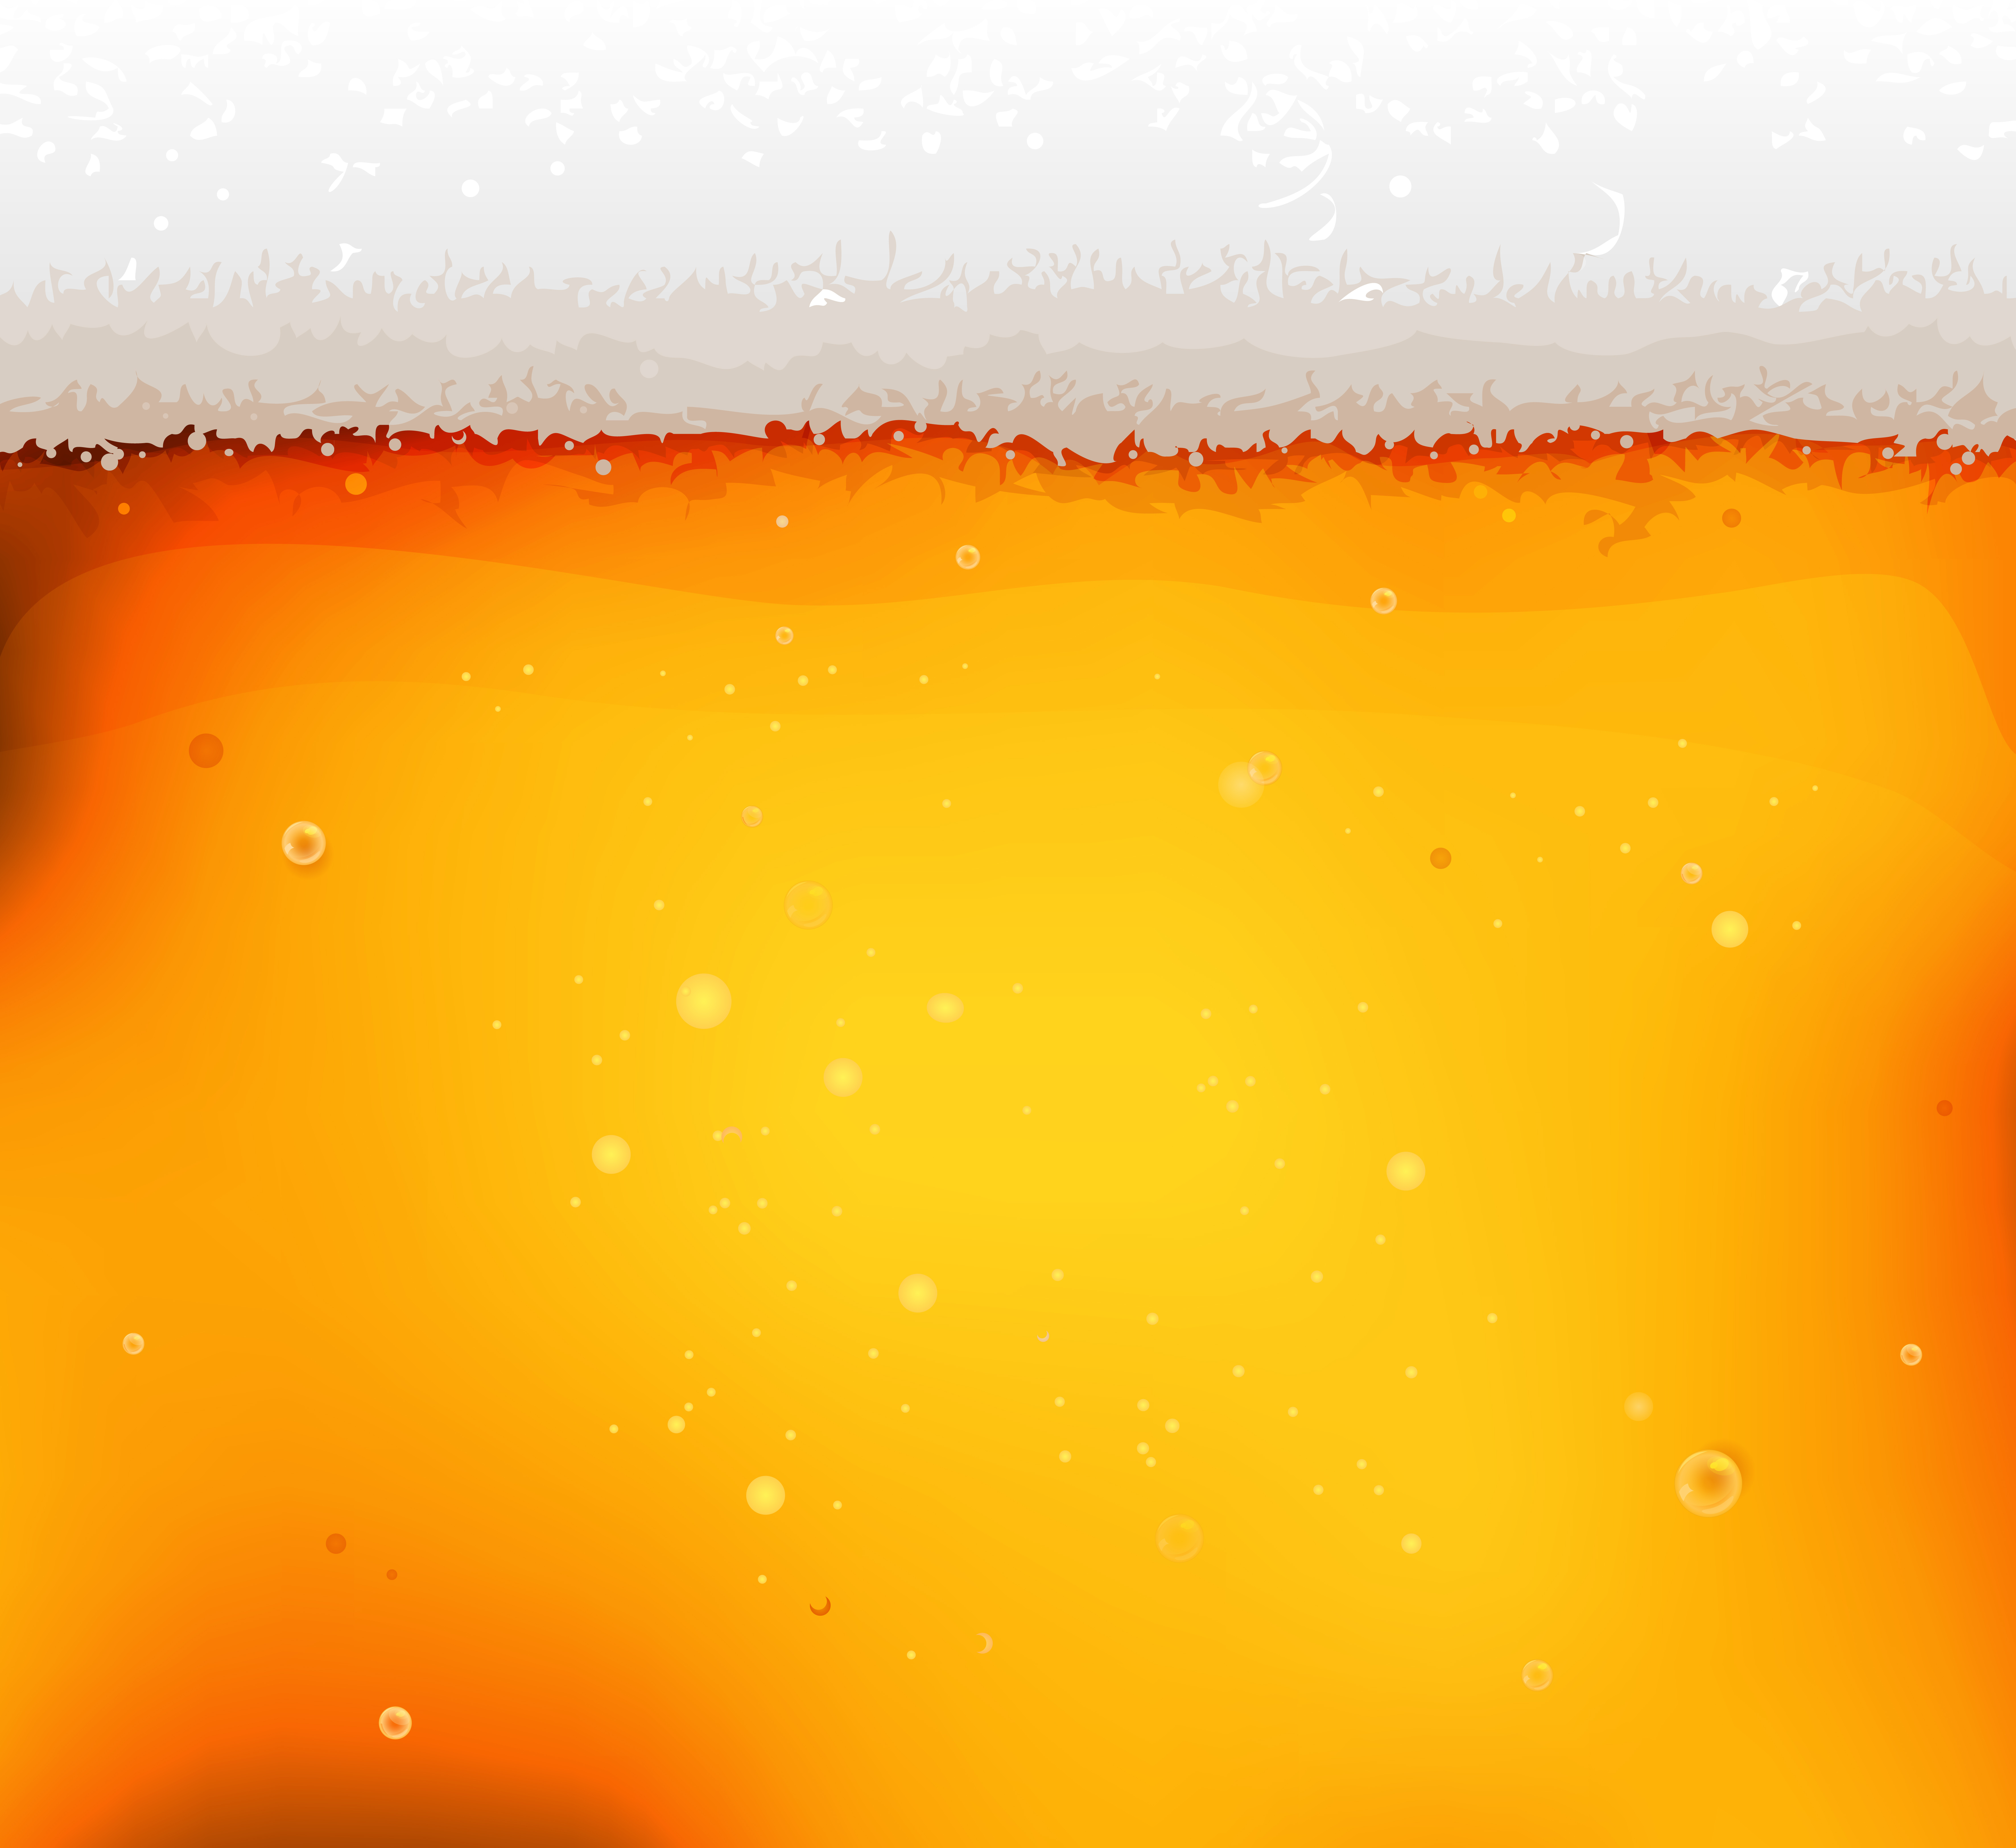 Beer Texture Background With Froth And Bubbles Download